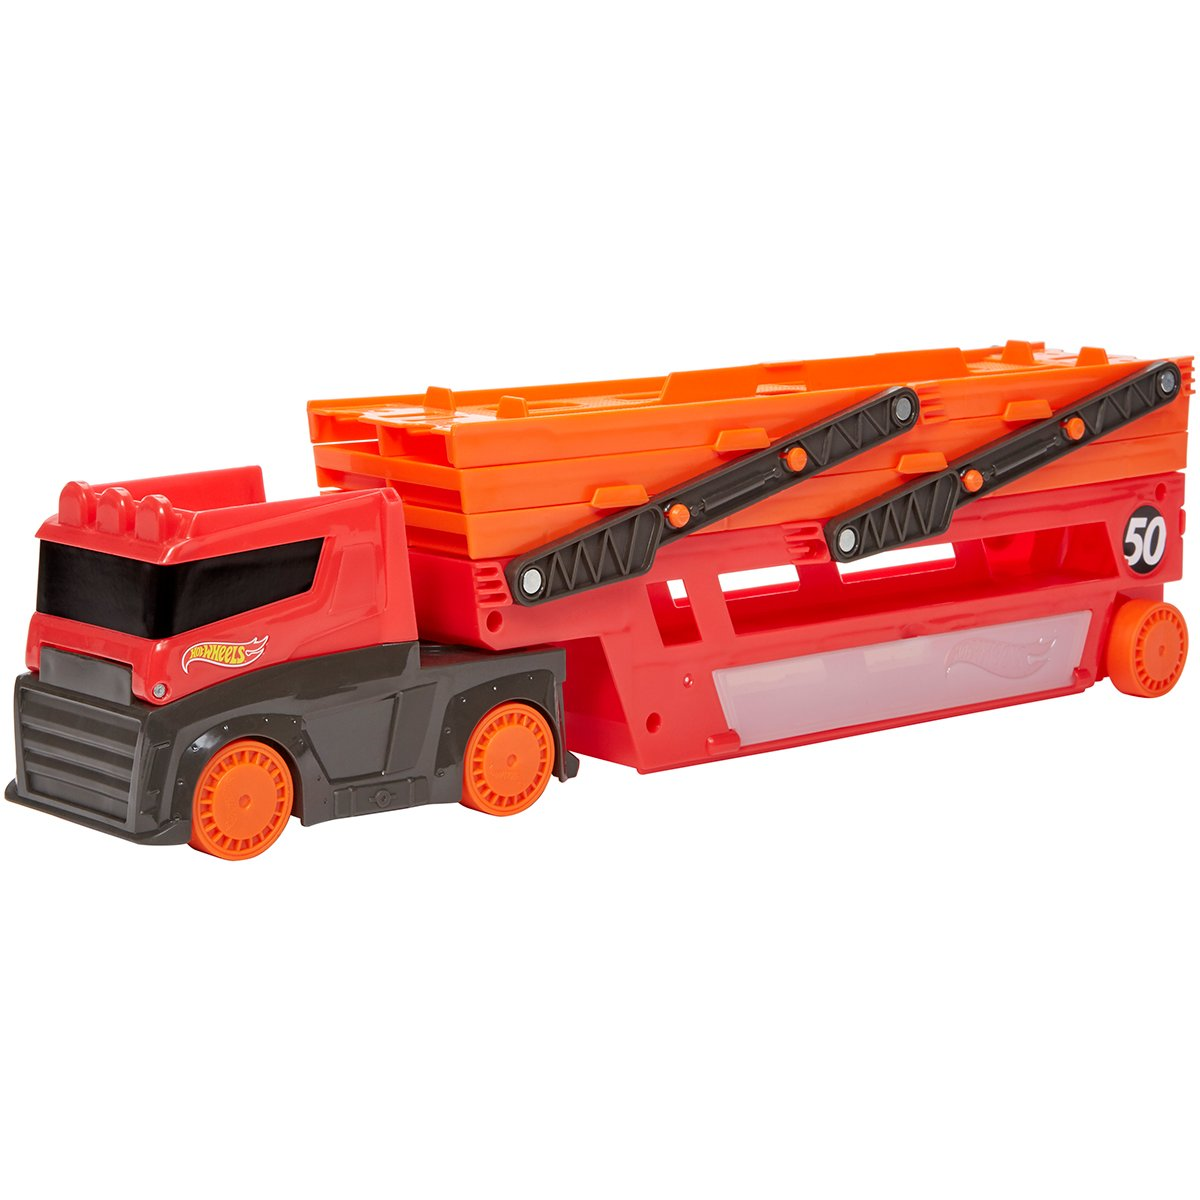 Mega Transportator de masini Hot Wheels, GHR48